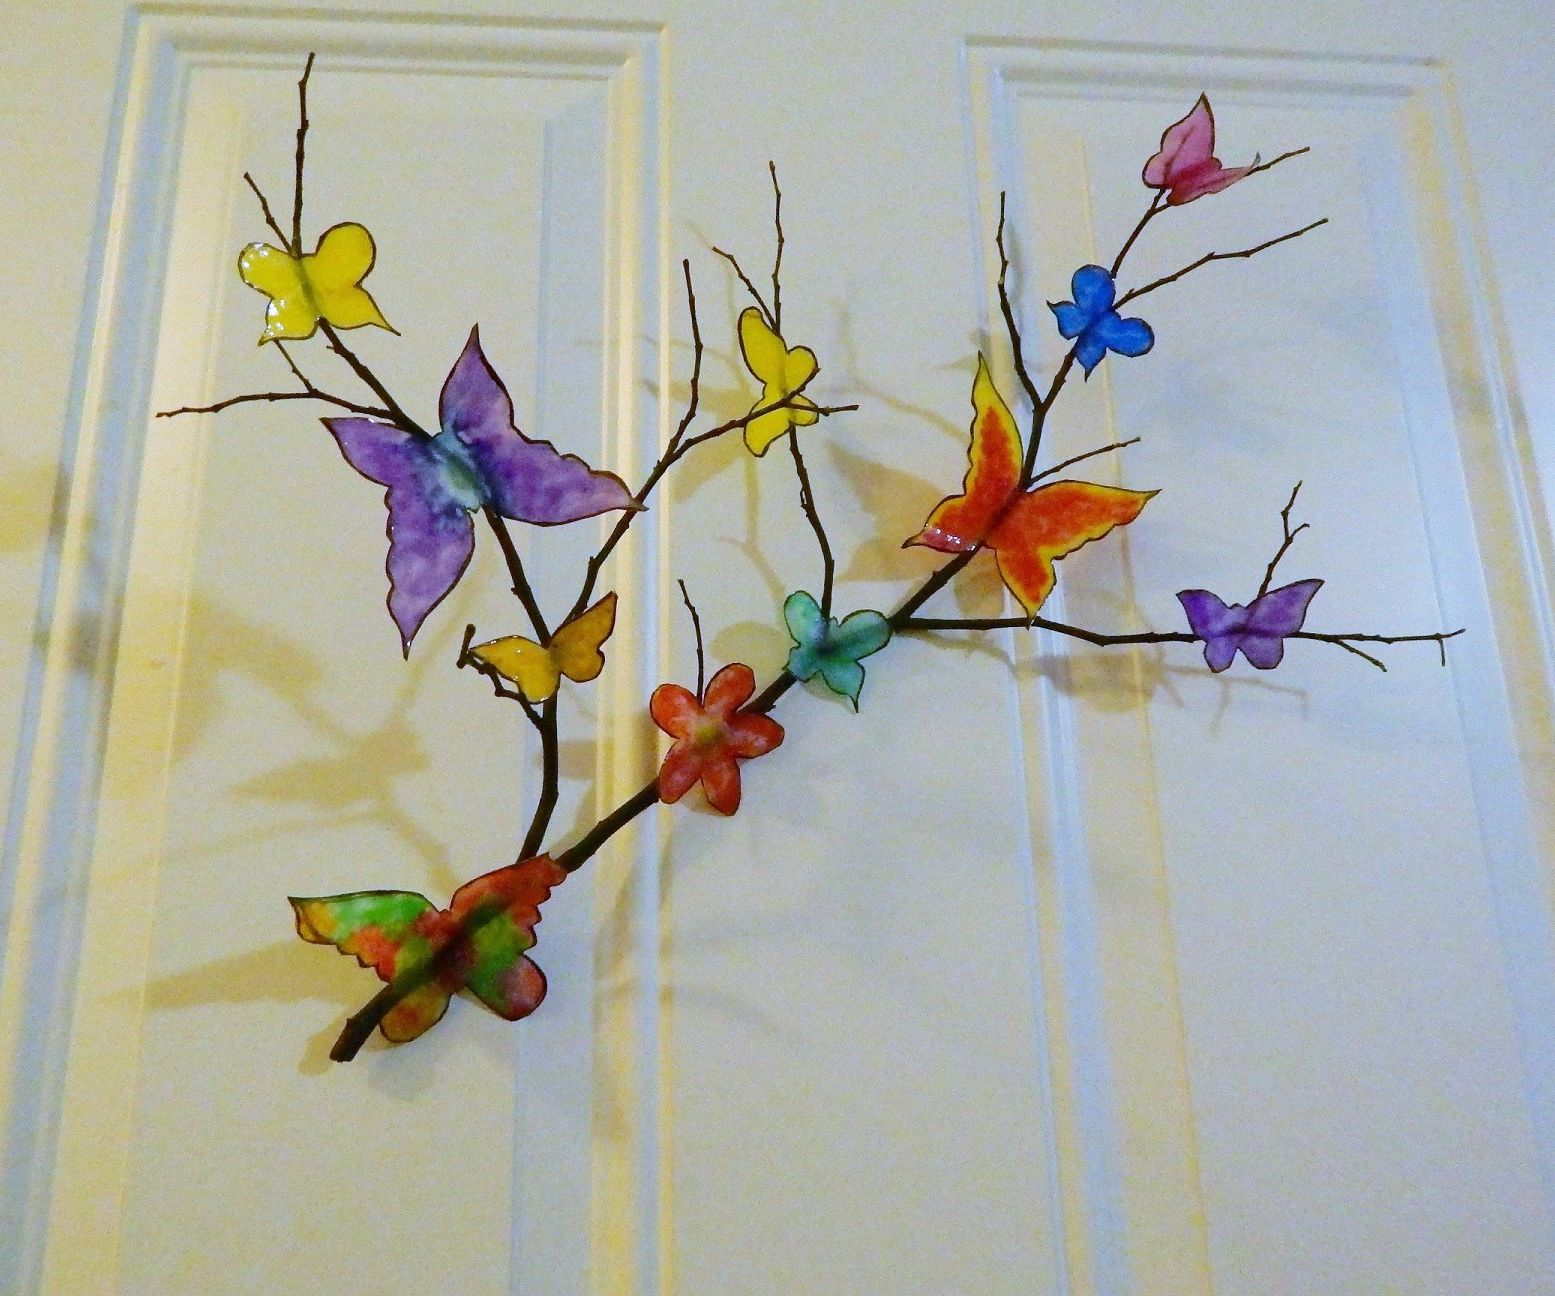 3D Butterfly Wall art - Recyclable